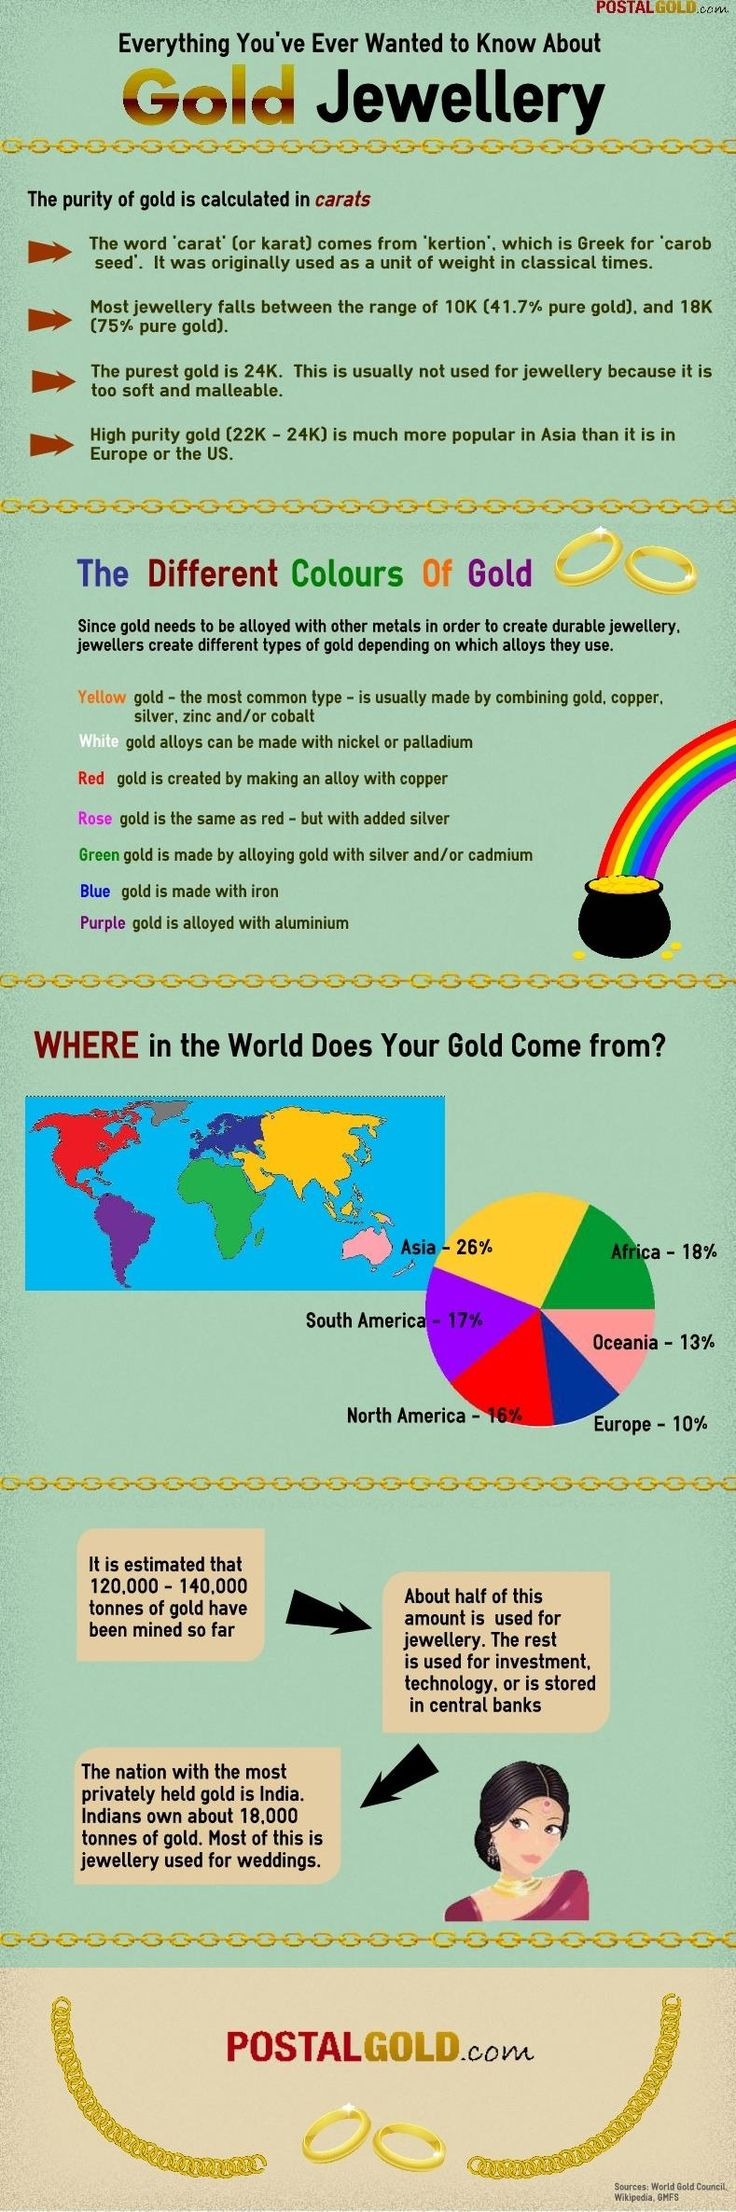 Gold Jewellery - An Infographic